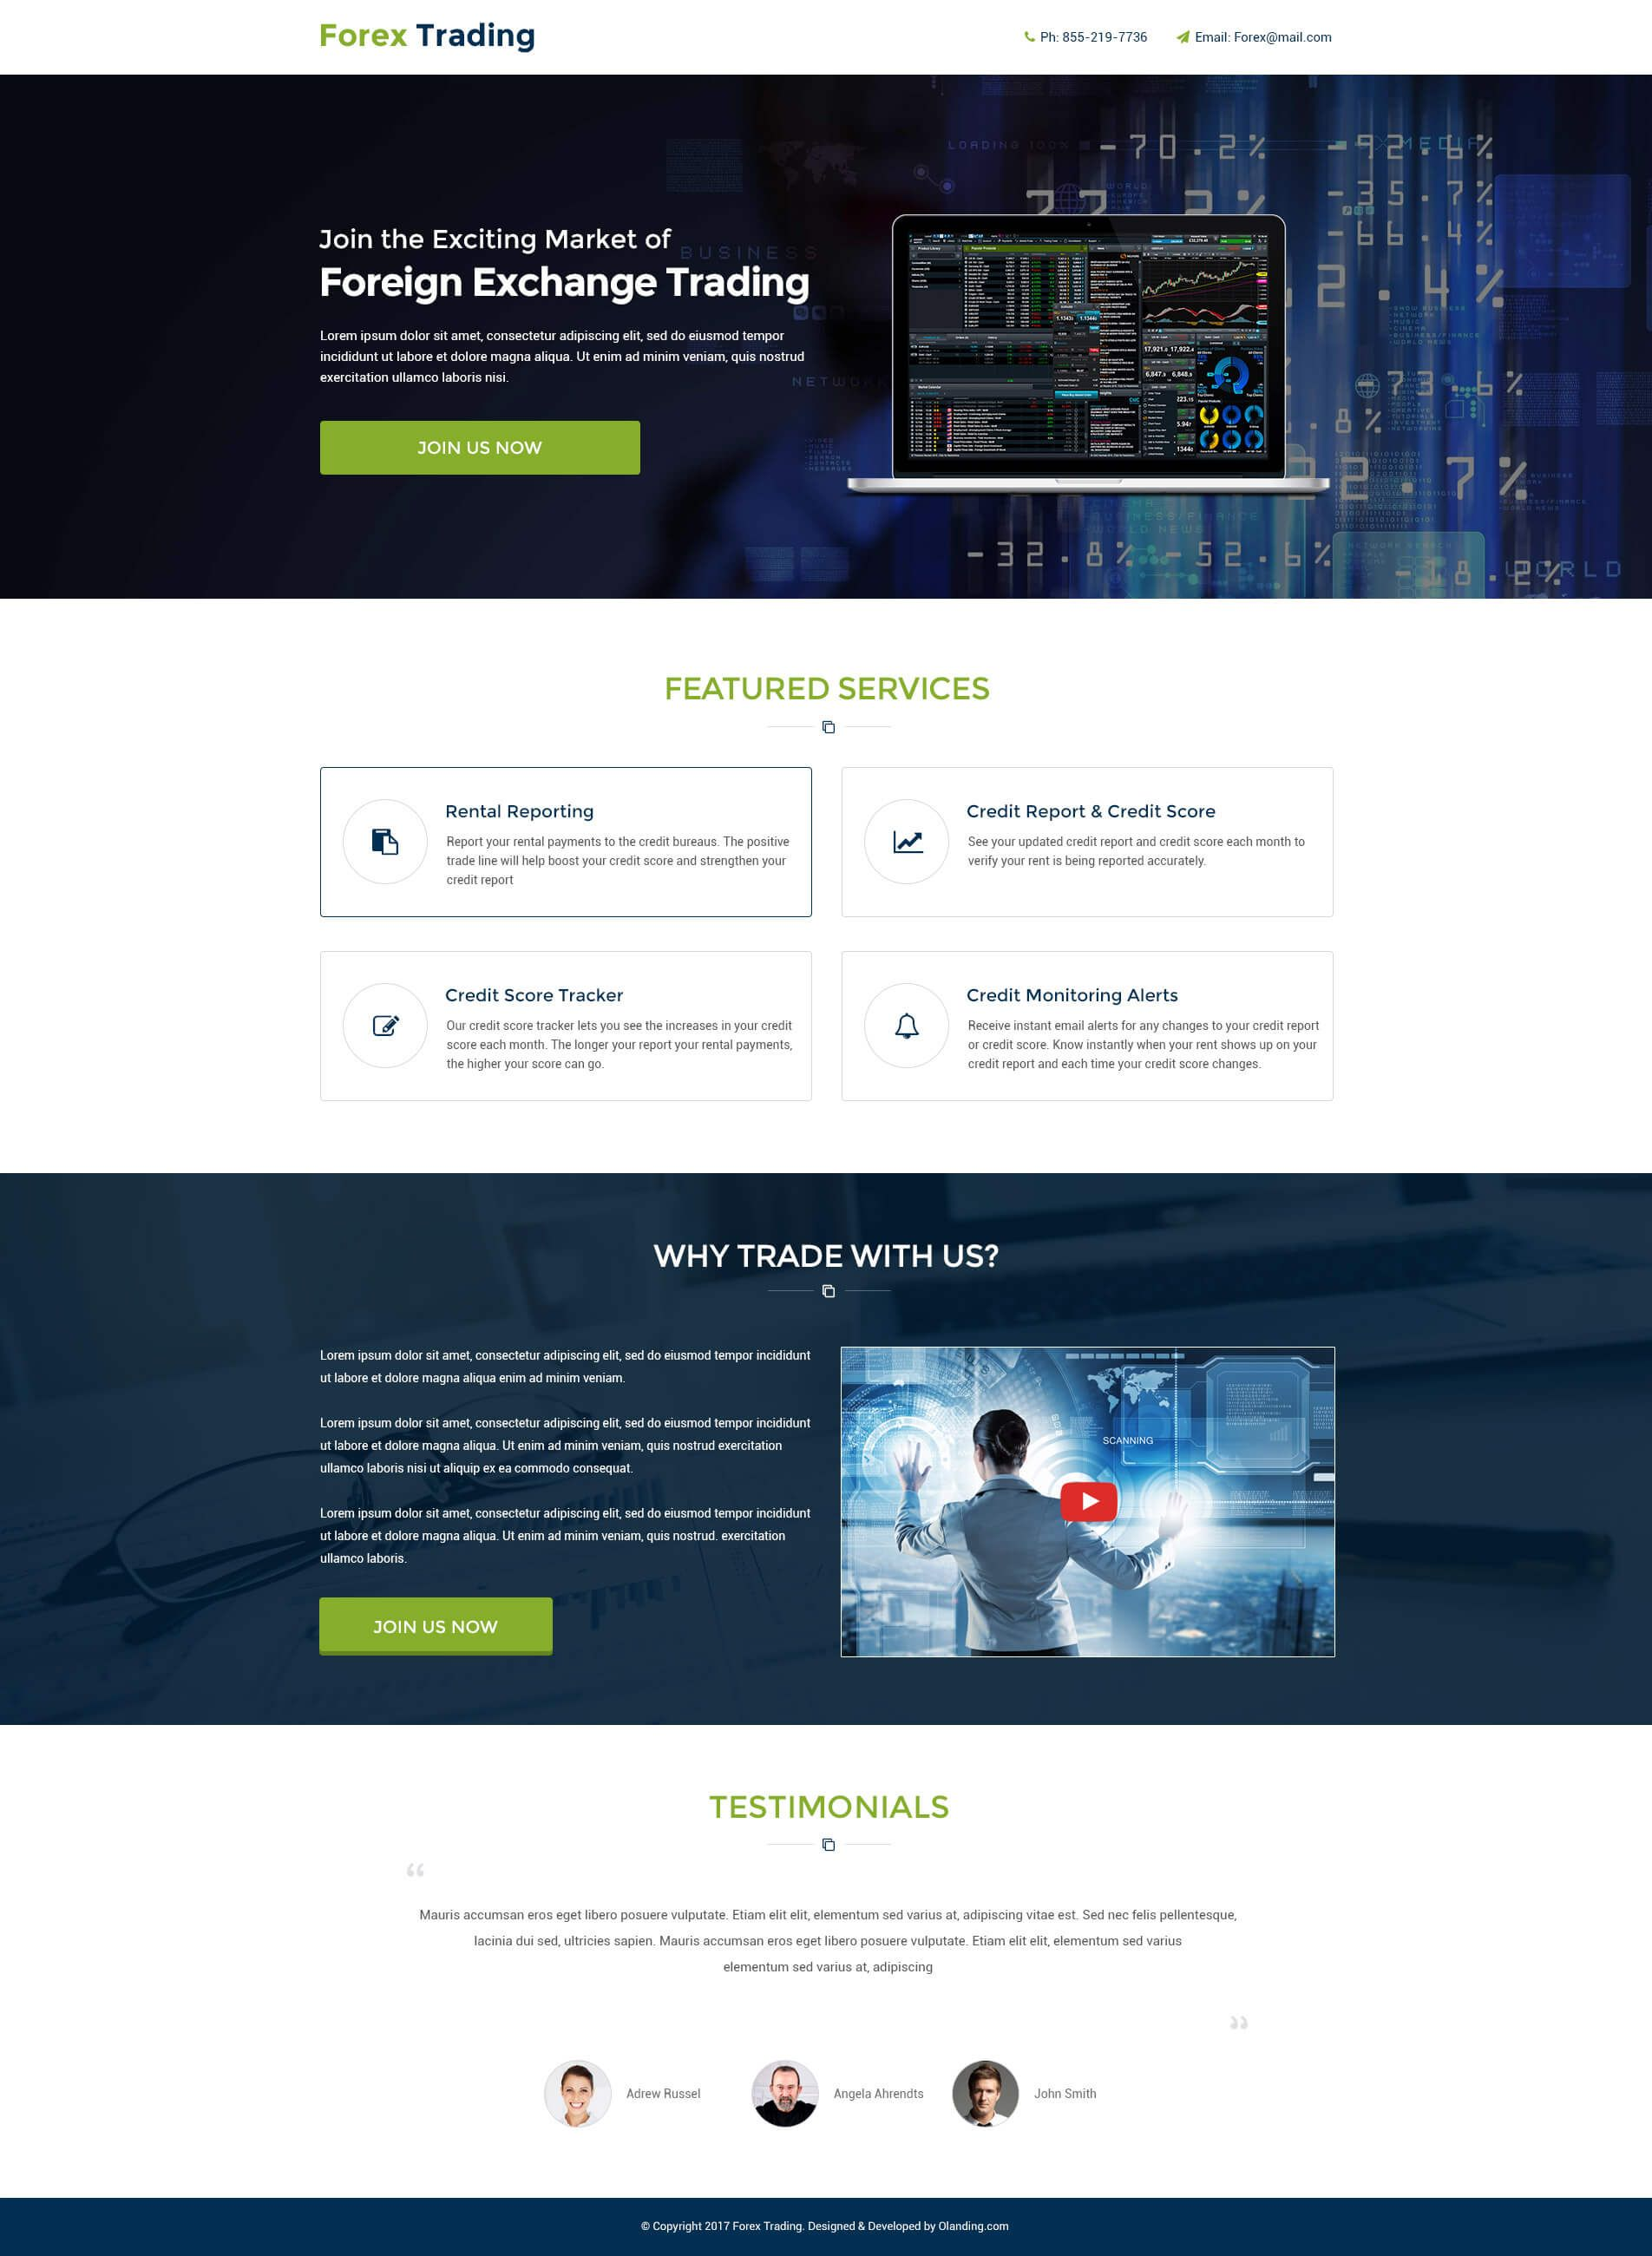 Lead Gen Responsive Forex Trading Landing Page Design Templates To